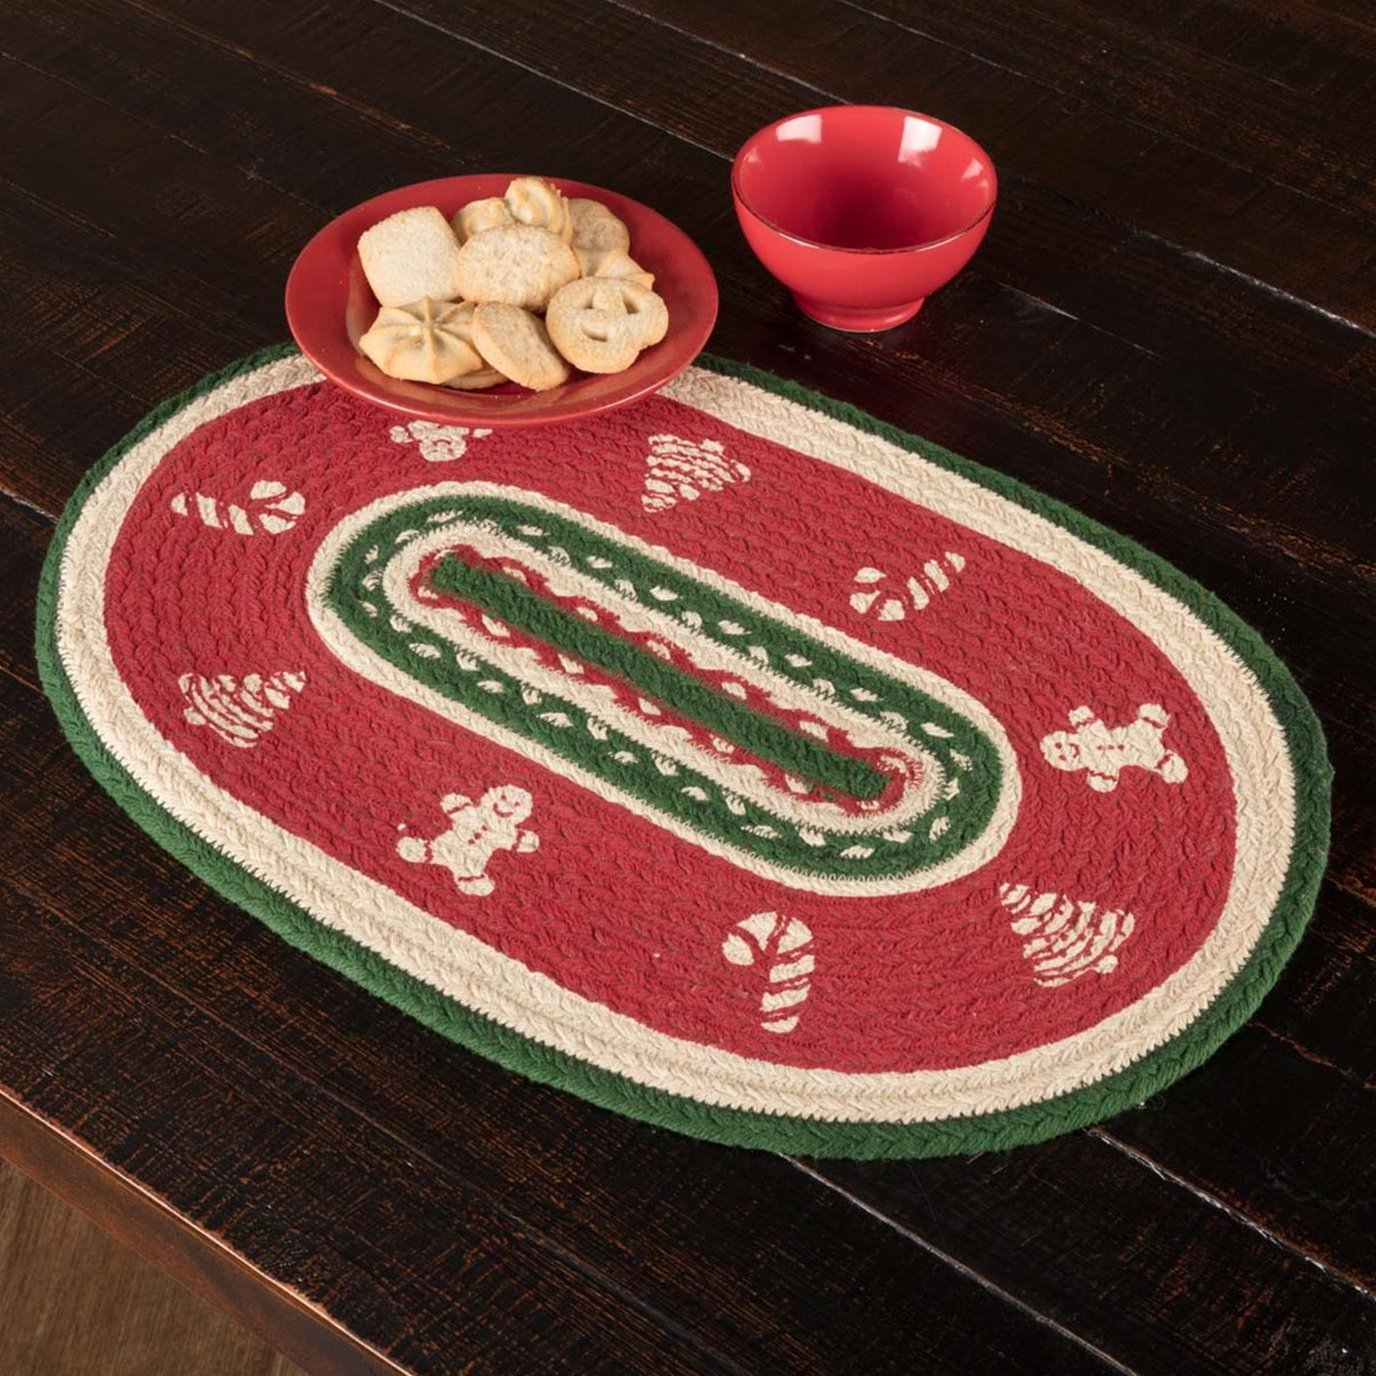 Christmas Cookies Placemat Set of 6 12x18